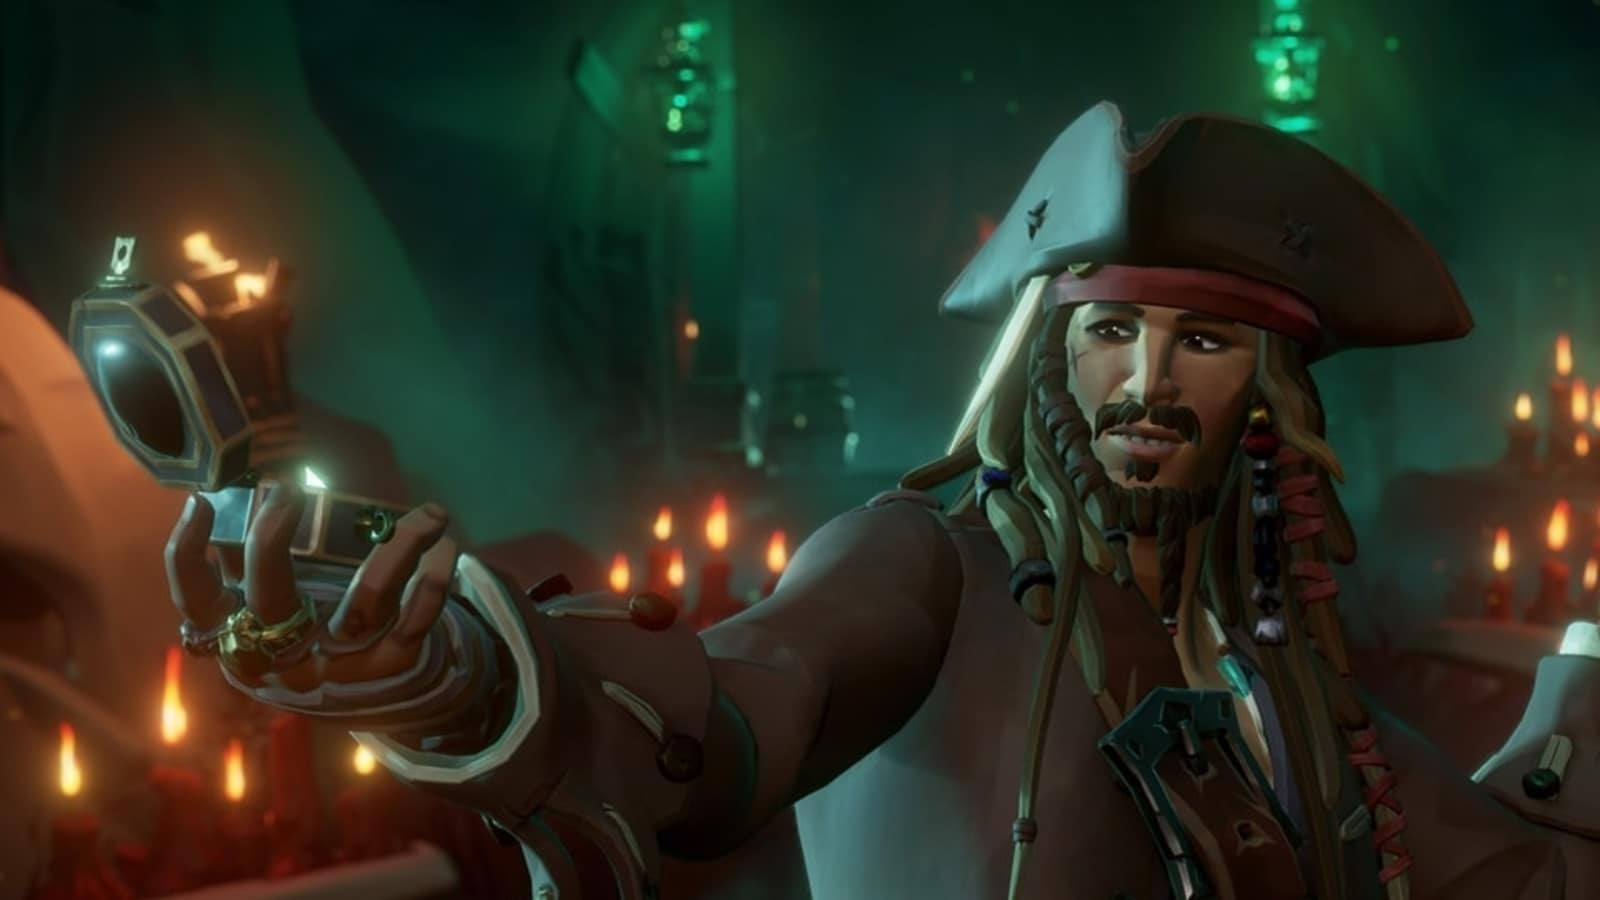 Pirates of the Caribbean have crossed the Pirates of the Caribbean today: Check the launch time, what to expect and more